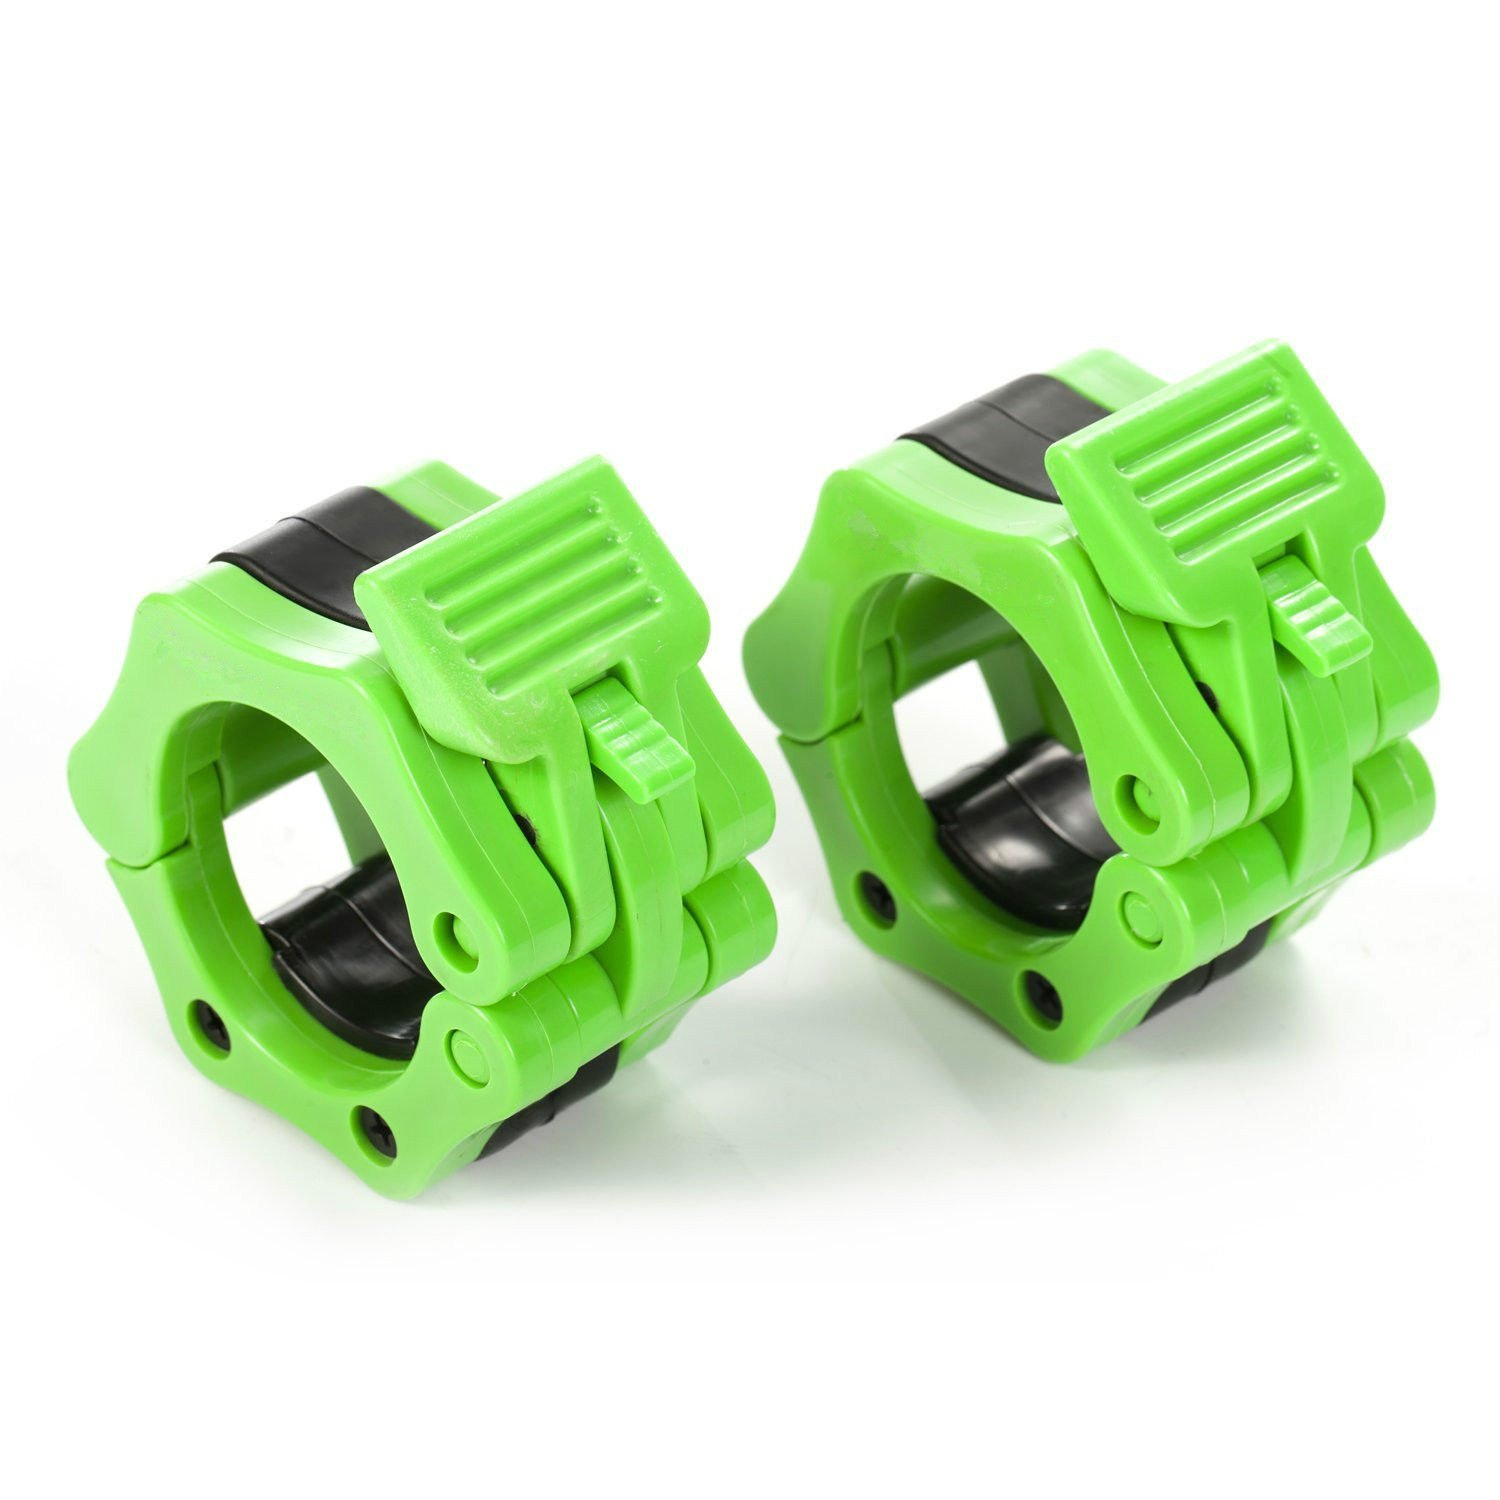 Workouty Pair of 2'' Olympic Barbell Collar Quick Release Barbell Clamp Lock Jaw for WeightLifting Crossfit Gym Exercise (Green)